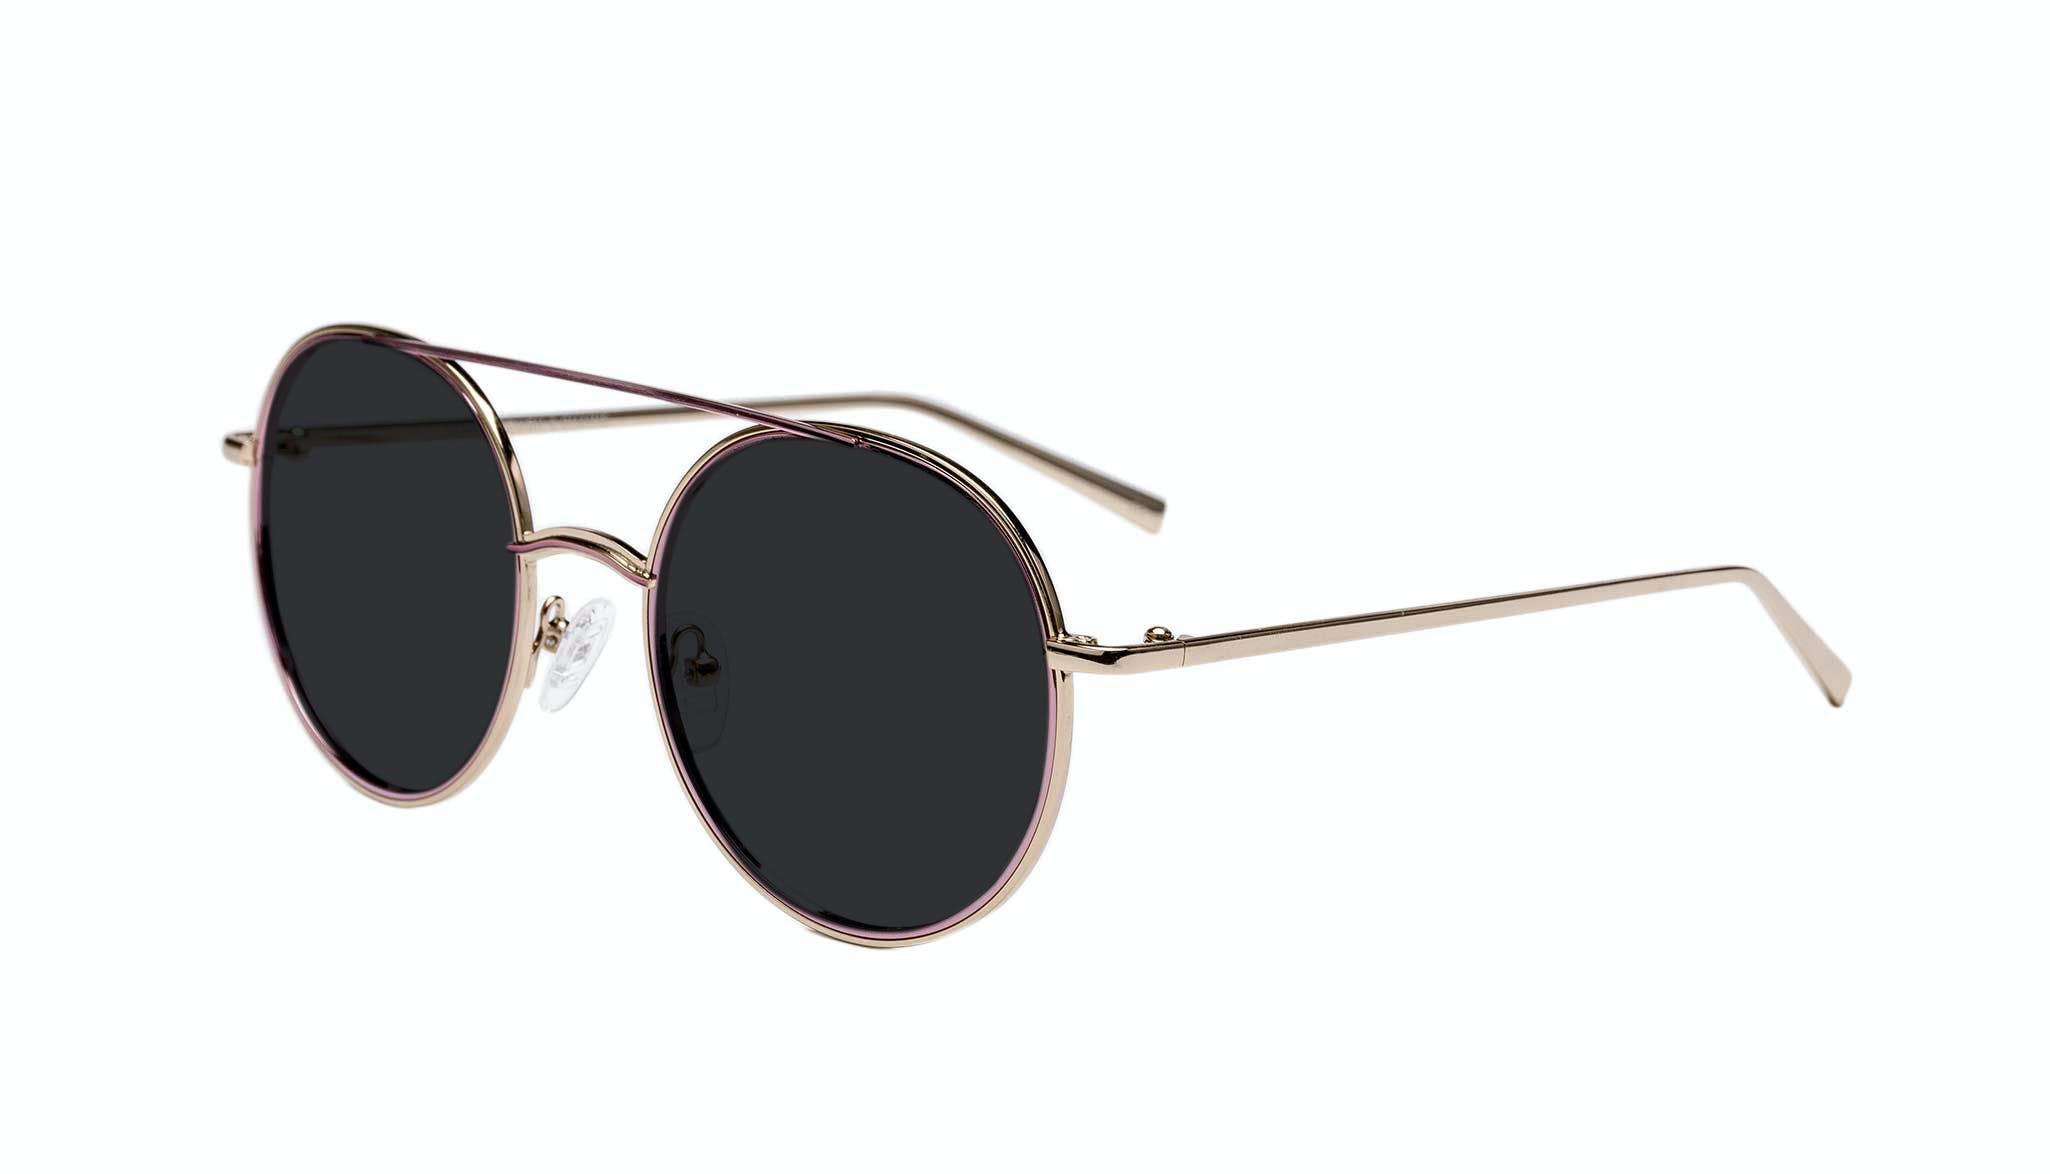 Affordable Fashion Glasses Aviator Sunglasses Women Scarborough 2 Chains Tilt